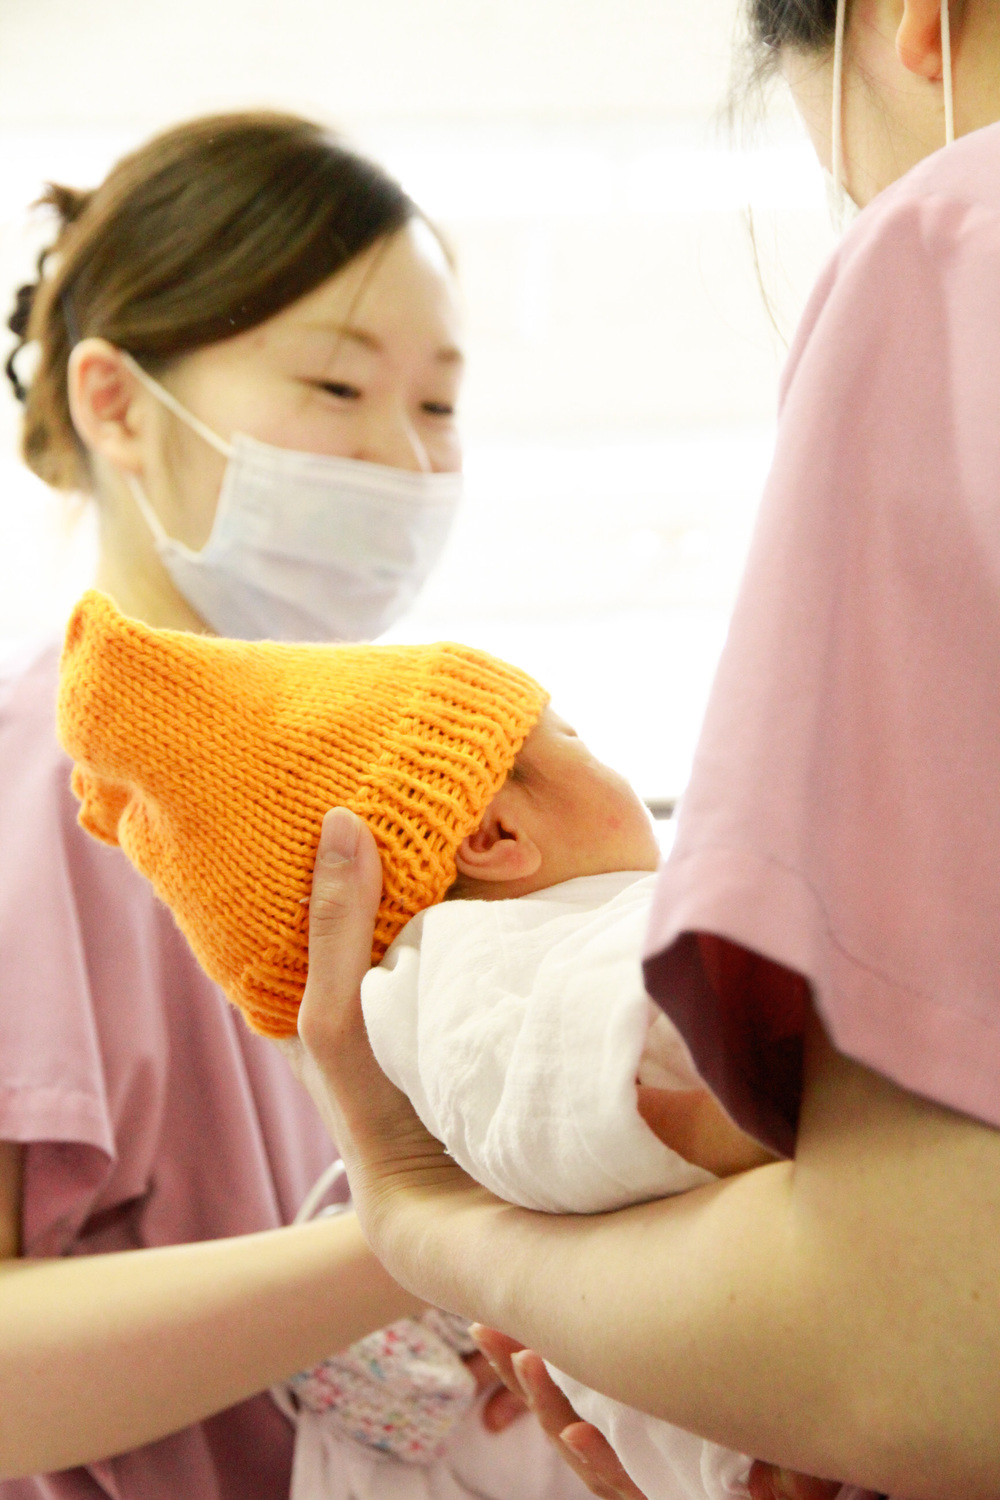 Delivering knitted items for babies at the Red Cross Hospital in Sendai   仙台市の日赤病院のNICU病棟の赤ちゃんたちに編んだ帽子などを届けたときの様子